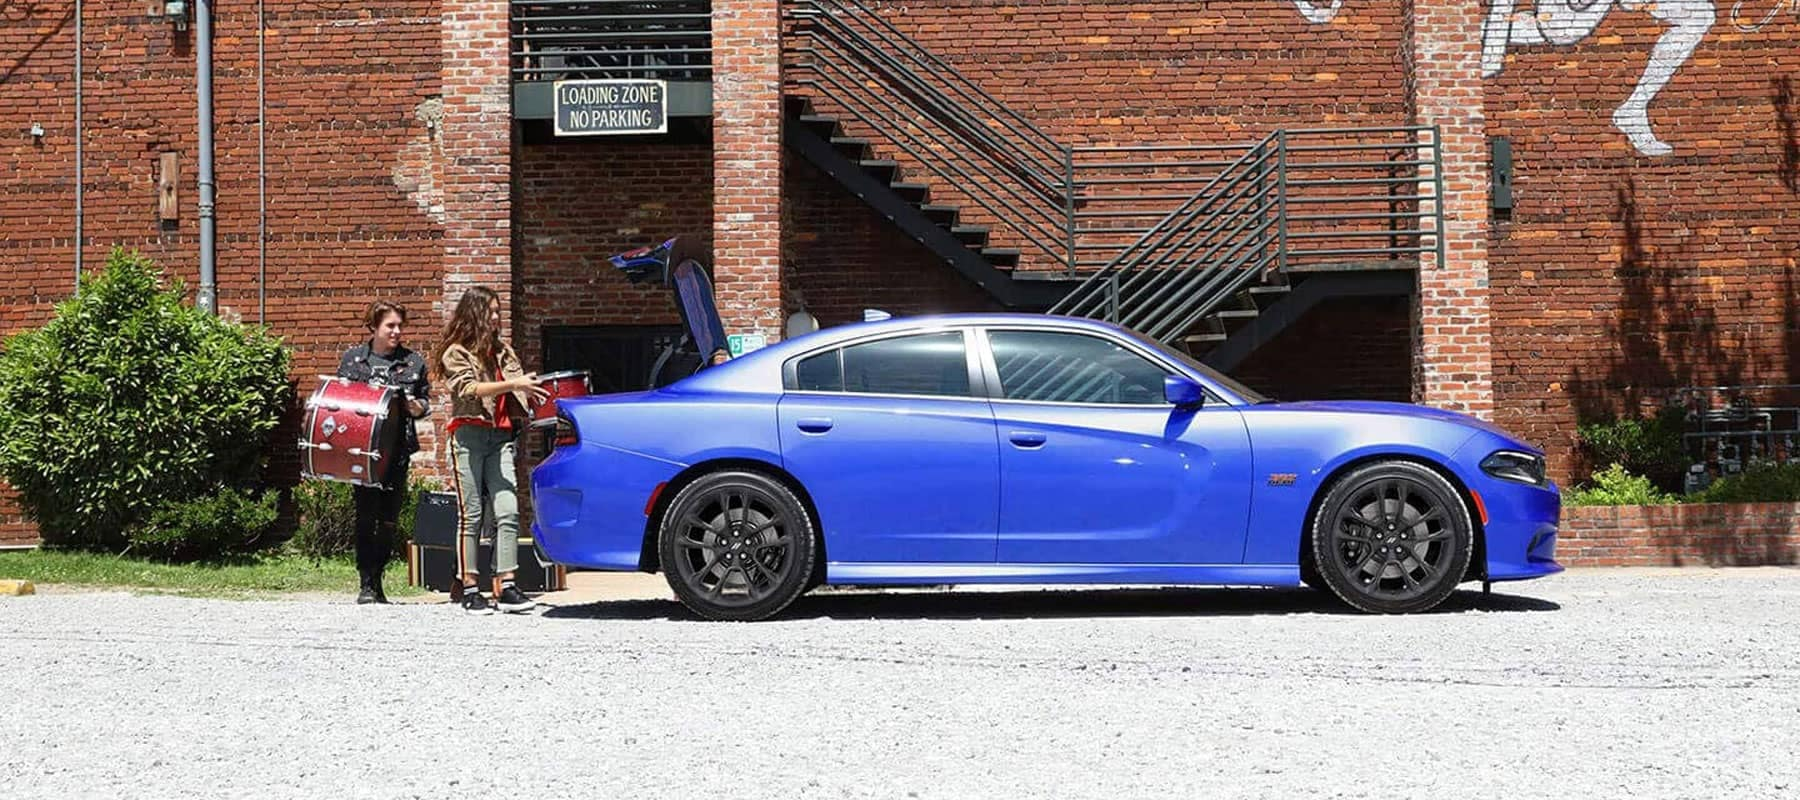 Blue 2021 Dodge Charger parked with the trunk popped